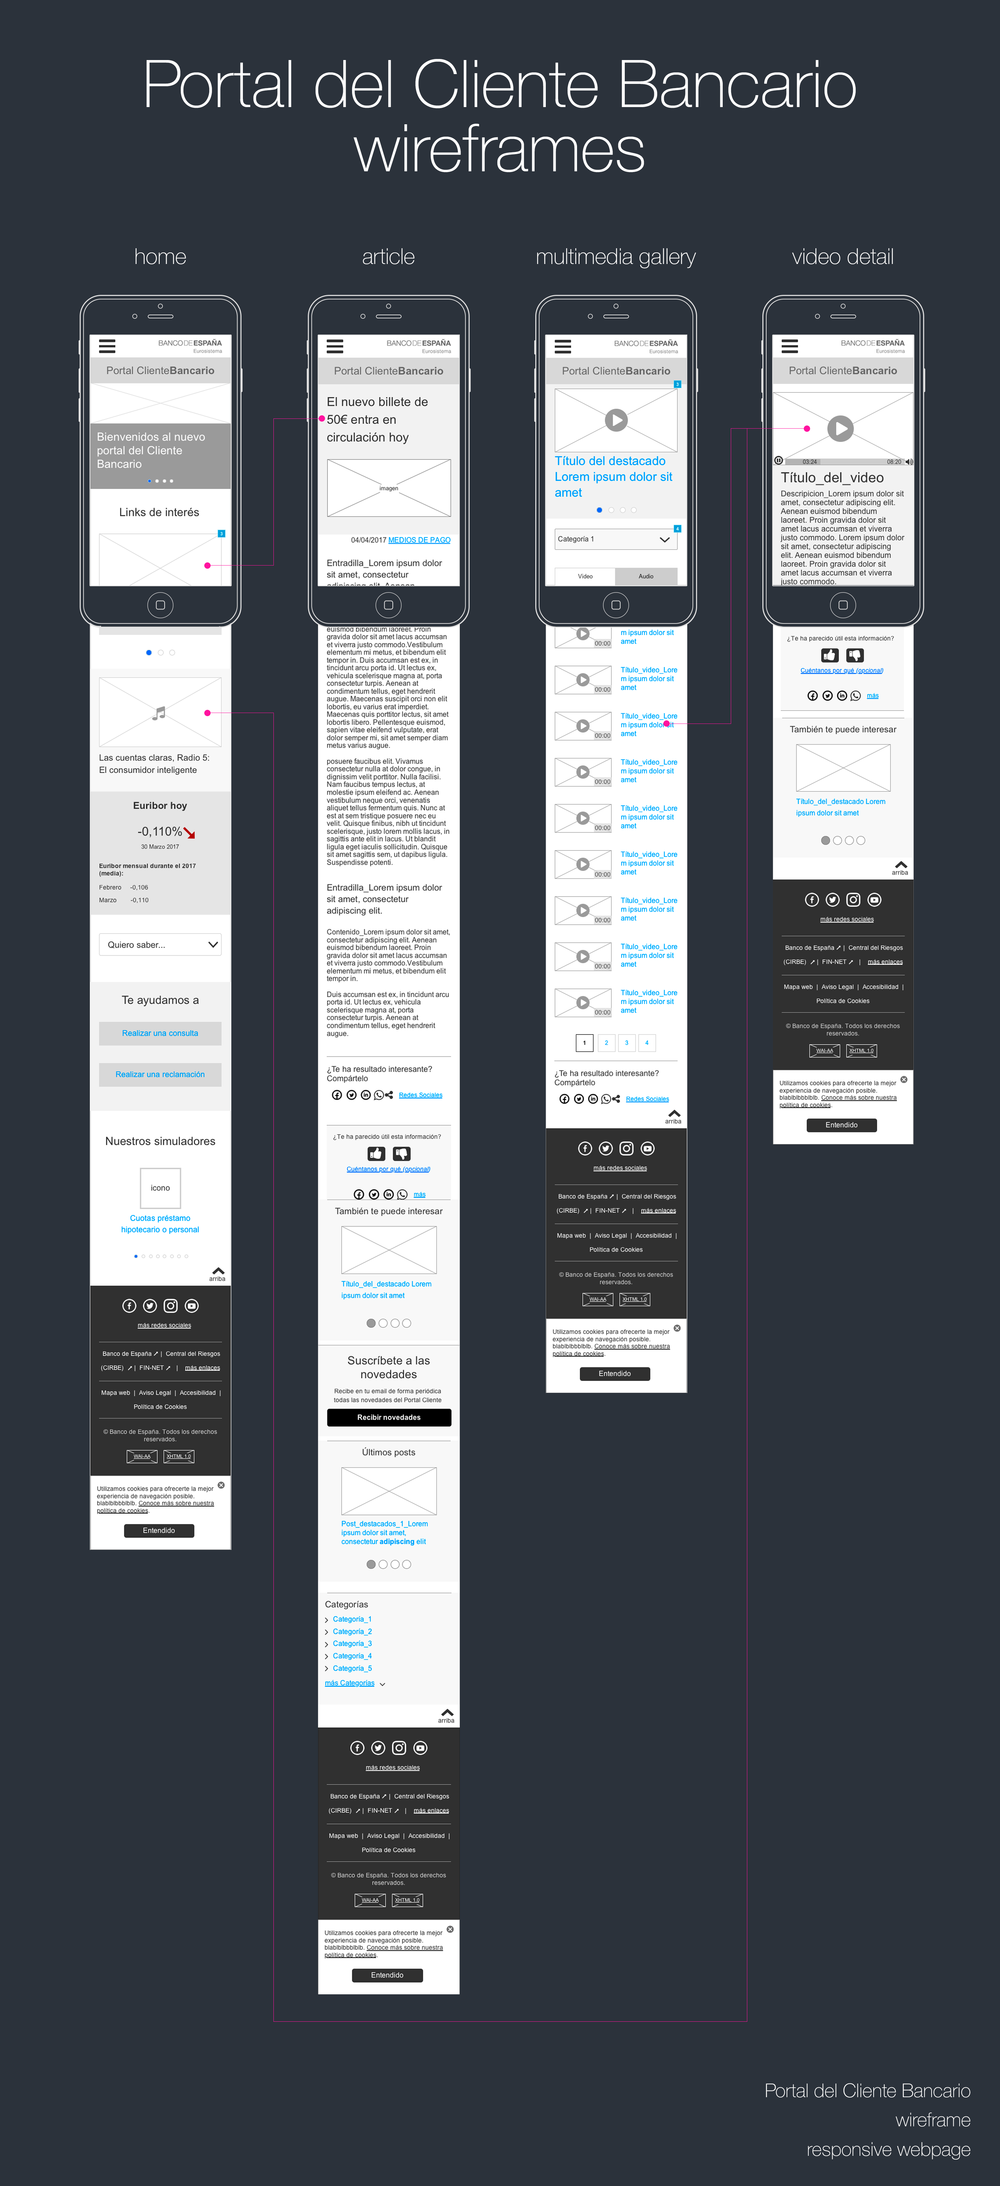 Some of the wireframes.